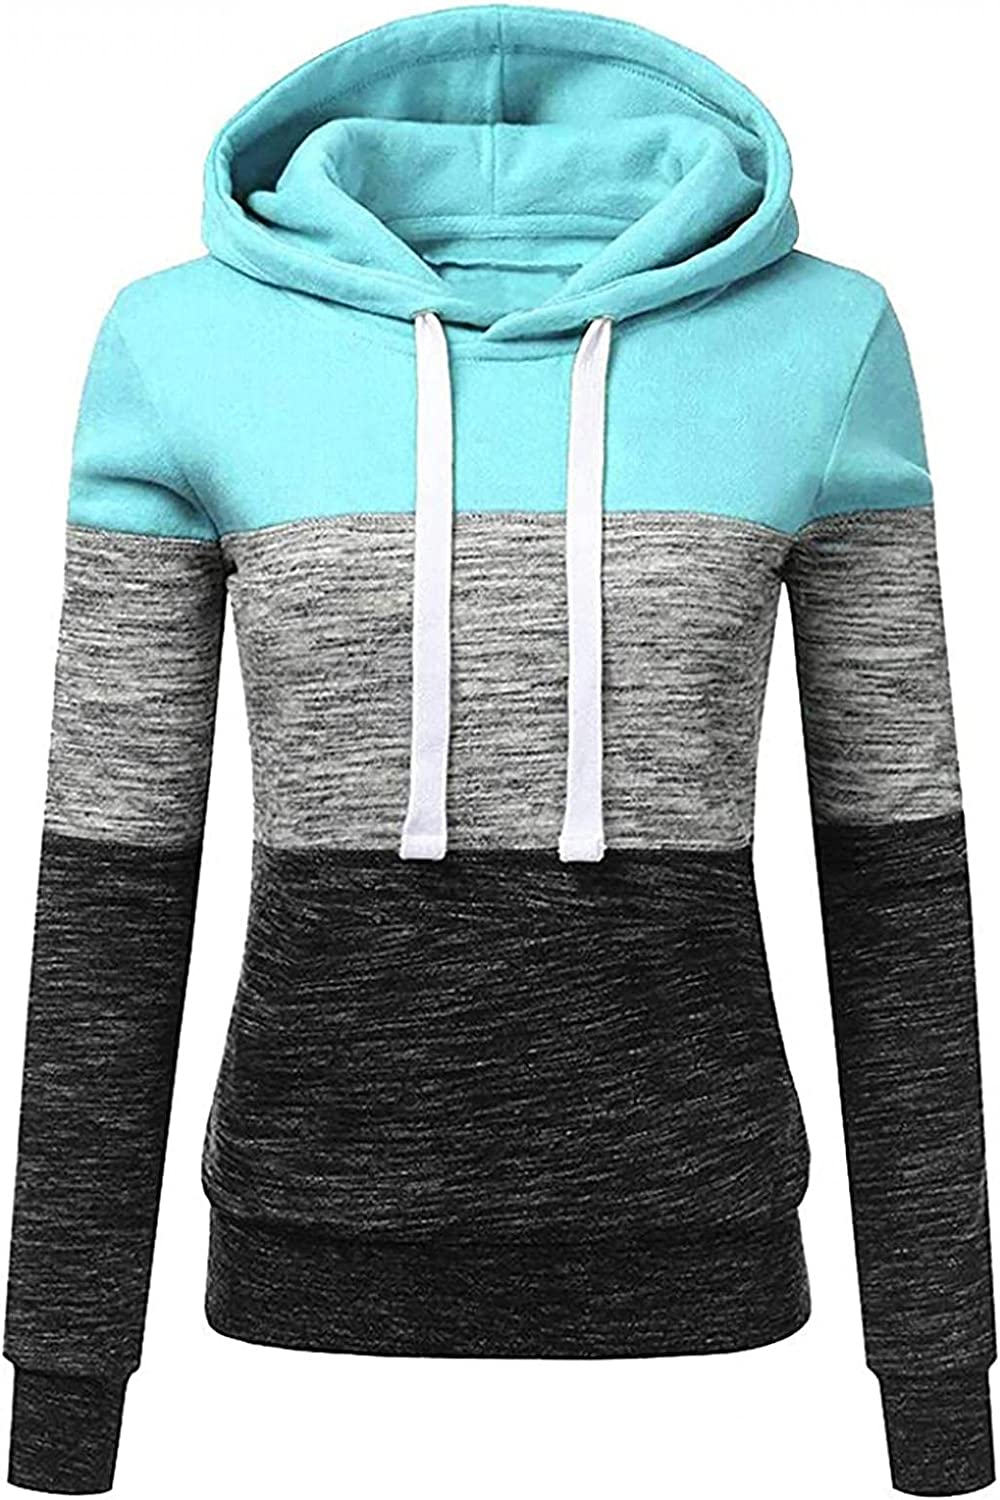 FABIURT Hoodies for Women, Womens Tunics Shirts Tops Casual Long Sleeve Round Neck Loose Comfy Soft Striped Blouses